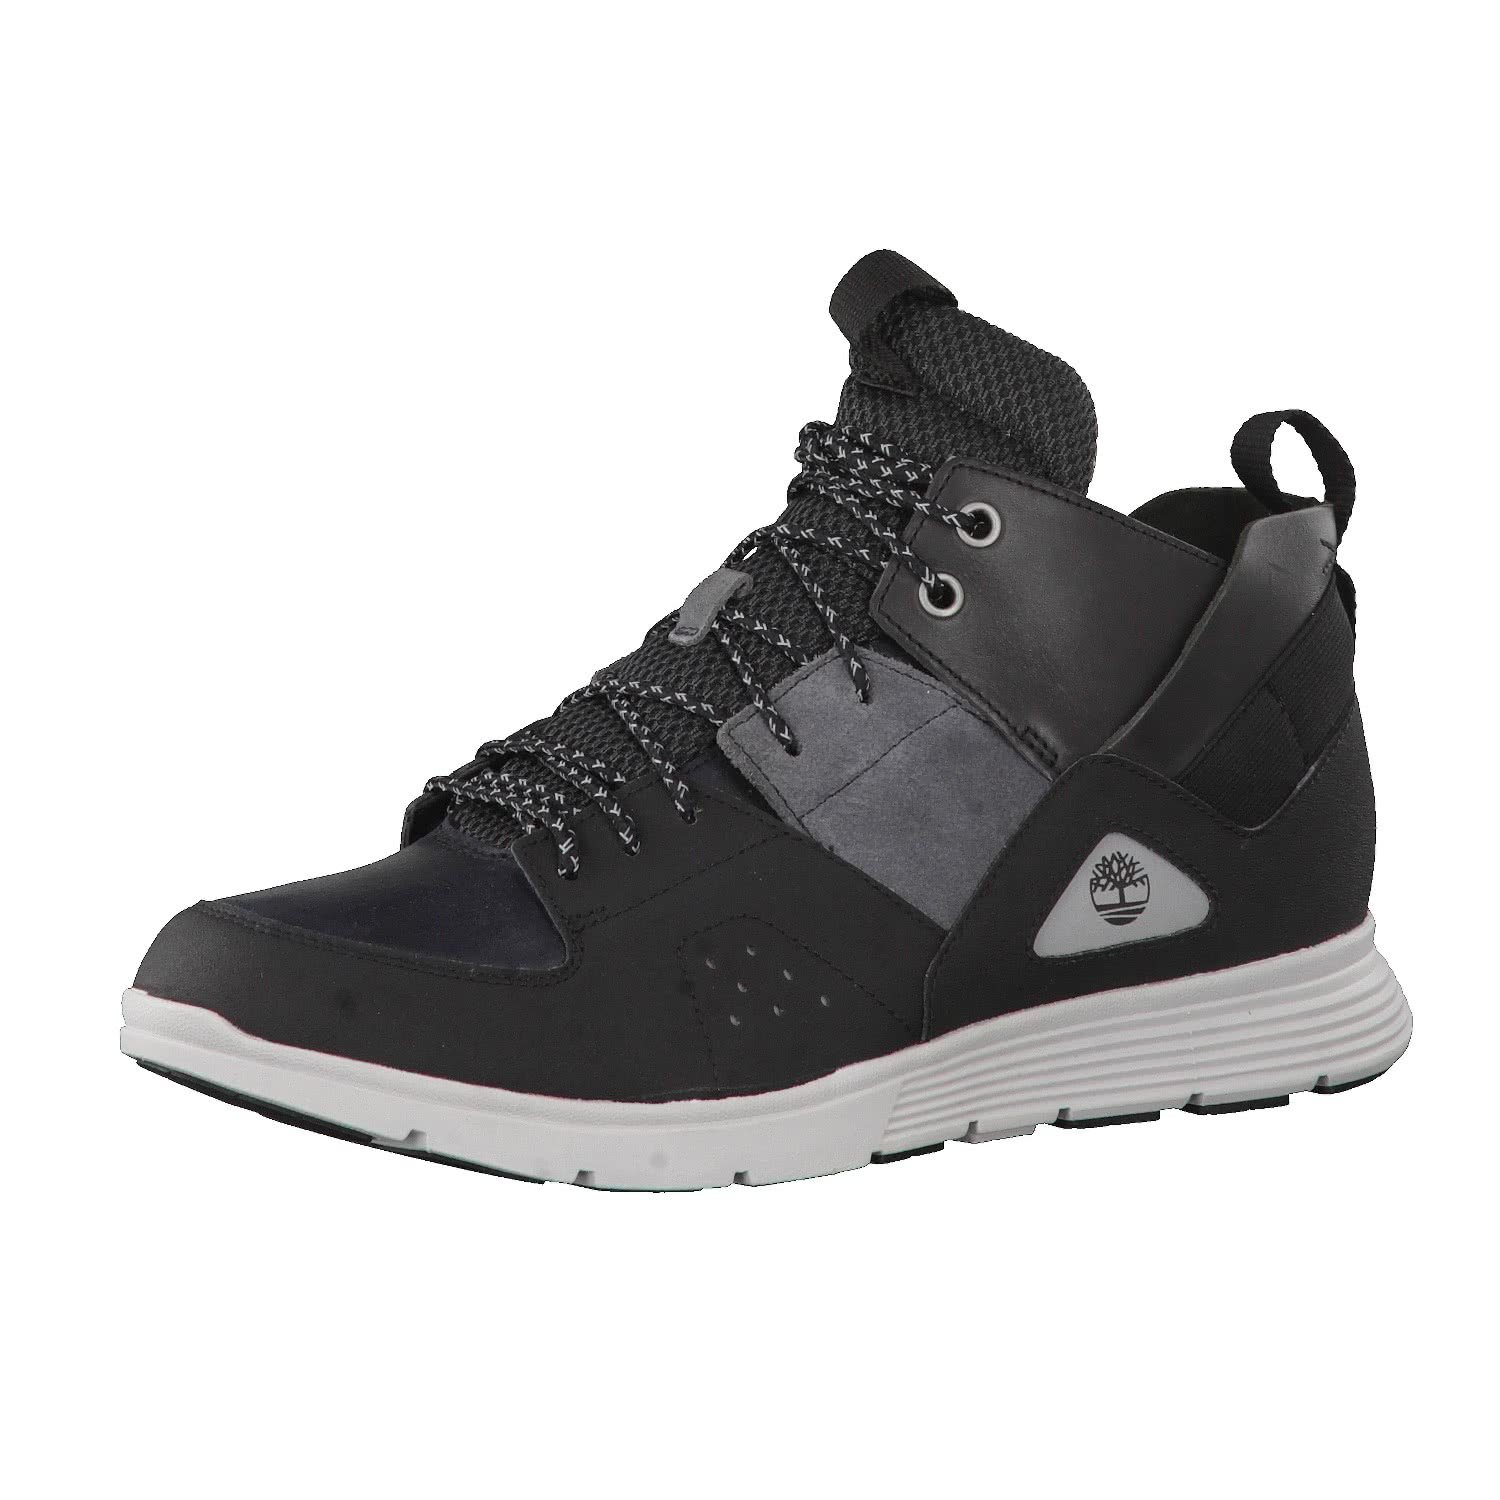 TALLA 44 EU. Timberland Killington New Leather Chukka CA1HP8, Zapatos del barco